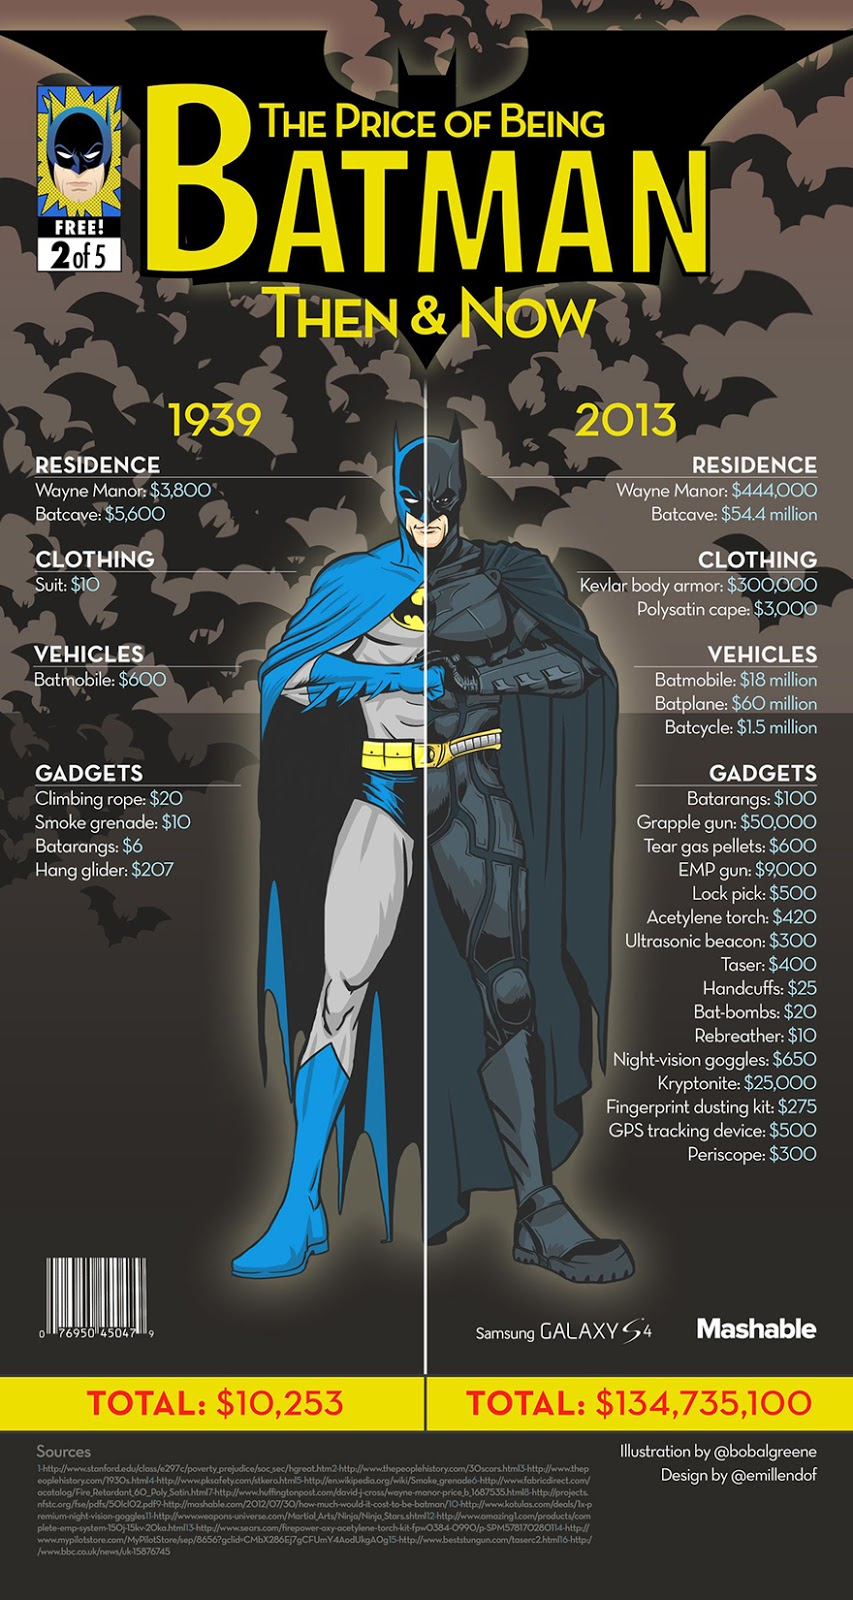 The Price of Being Batman